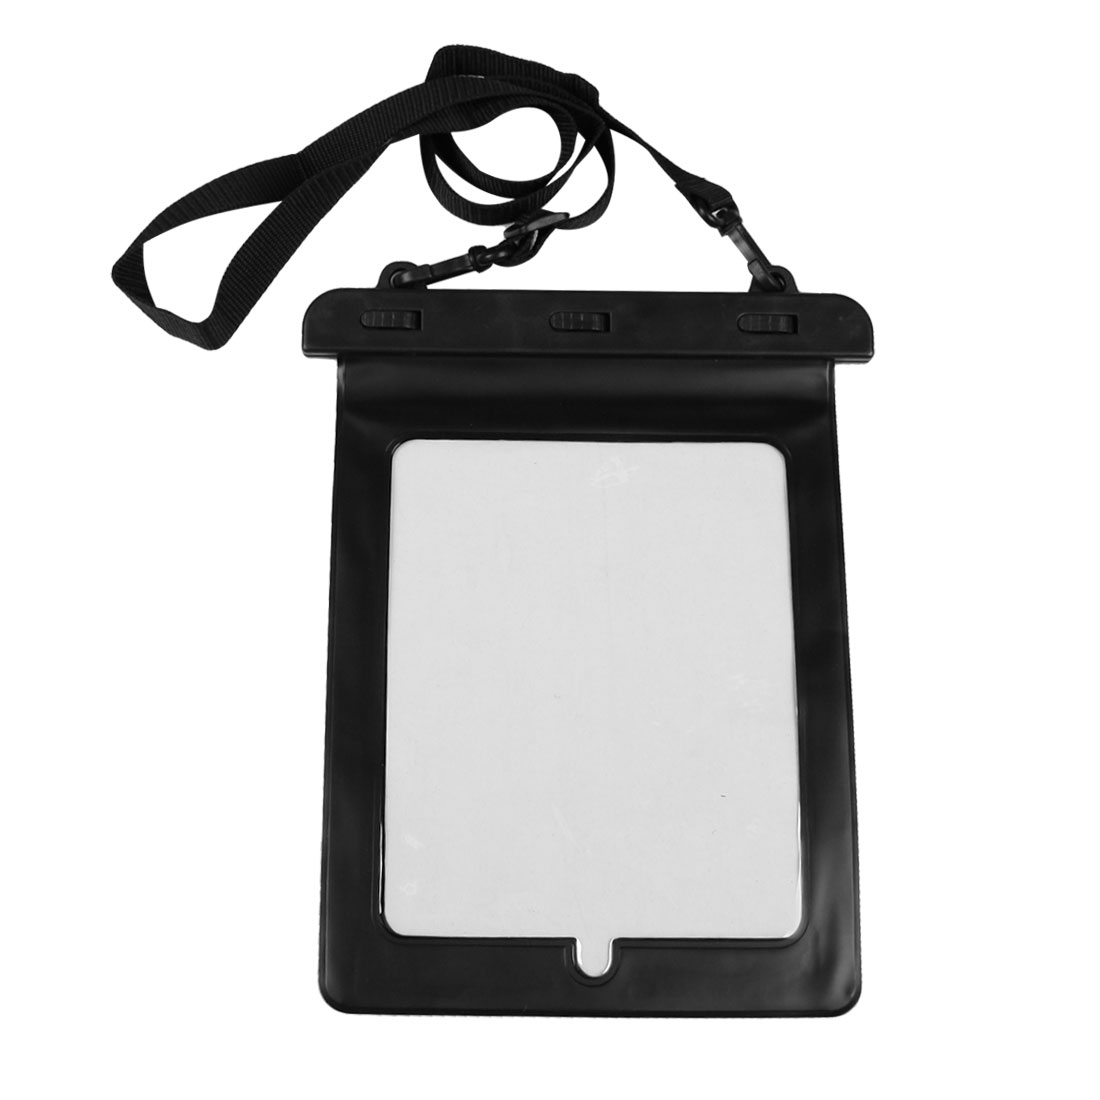 Black Water Resistance Plastic Pouch Bag Cover for Touch Screen